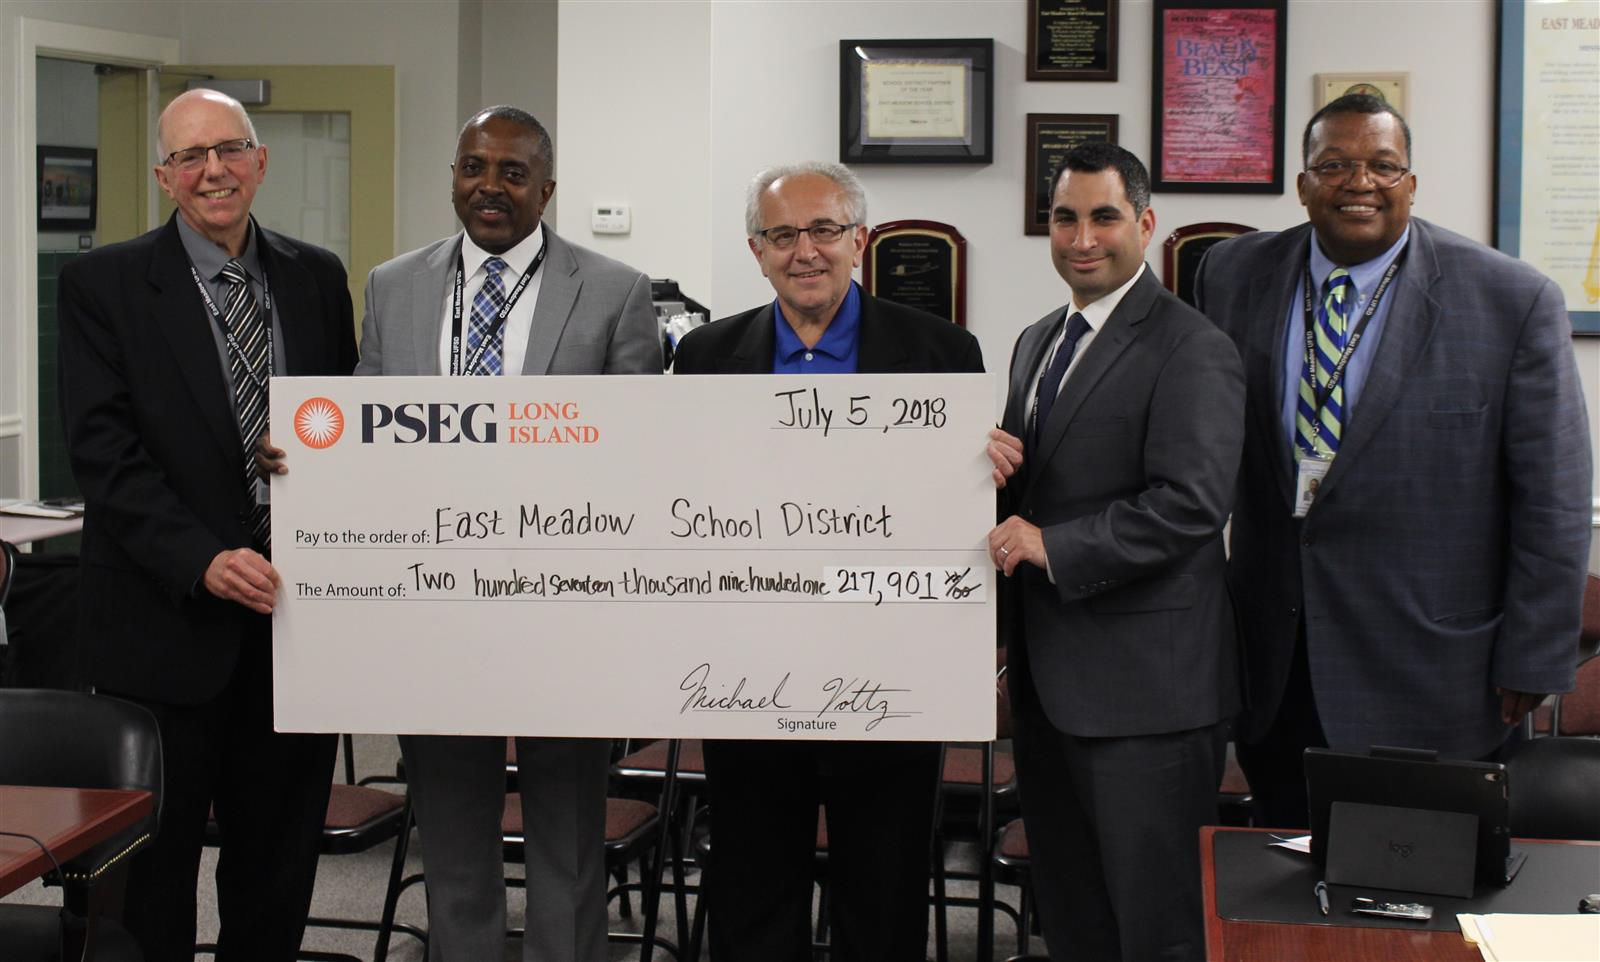 East Meadow Receives Energy Efficiency Rebate From PSEG photo